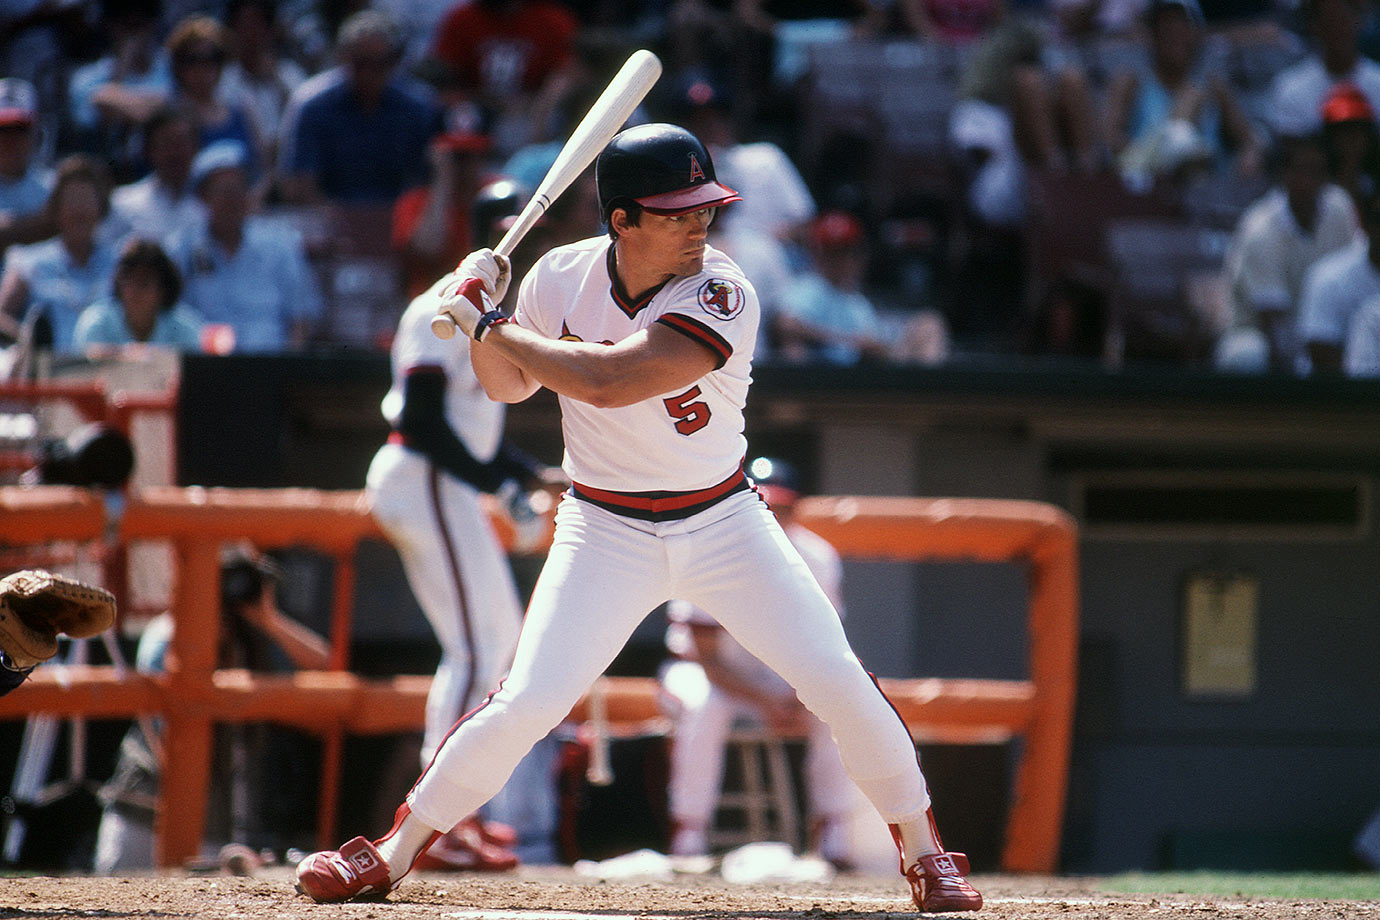 Although Brian Downing had few truly extraordinary seasons — he made just one All-Star Game, hit over .300 one time and never hit 30 home runs — the 20-year big leaguer put together an impressive career, the latter half of it spent as a designated hitter.                                           Downing hit 275 career home runs with 1,073 RBI and an OPS of .796. He possessed a keen eye at the plate, drawing 1,197 career walks to boost his on-base percentage to .370.